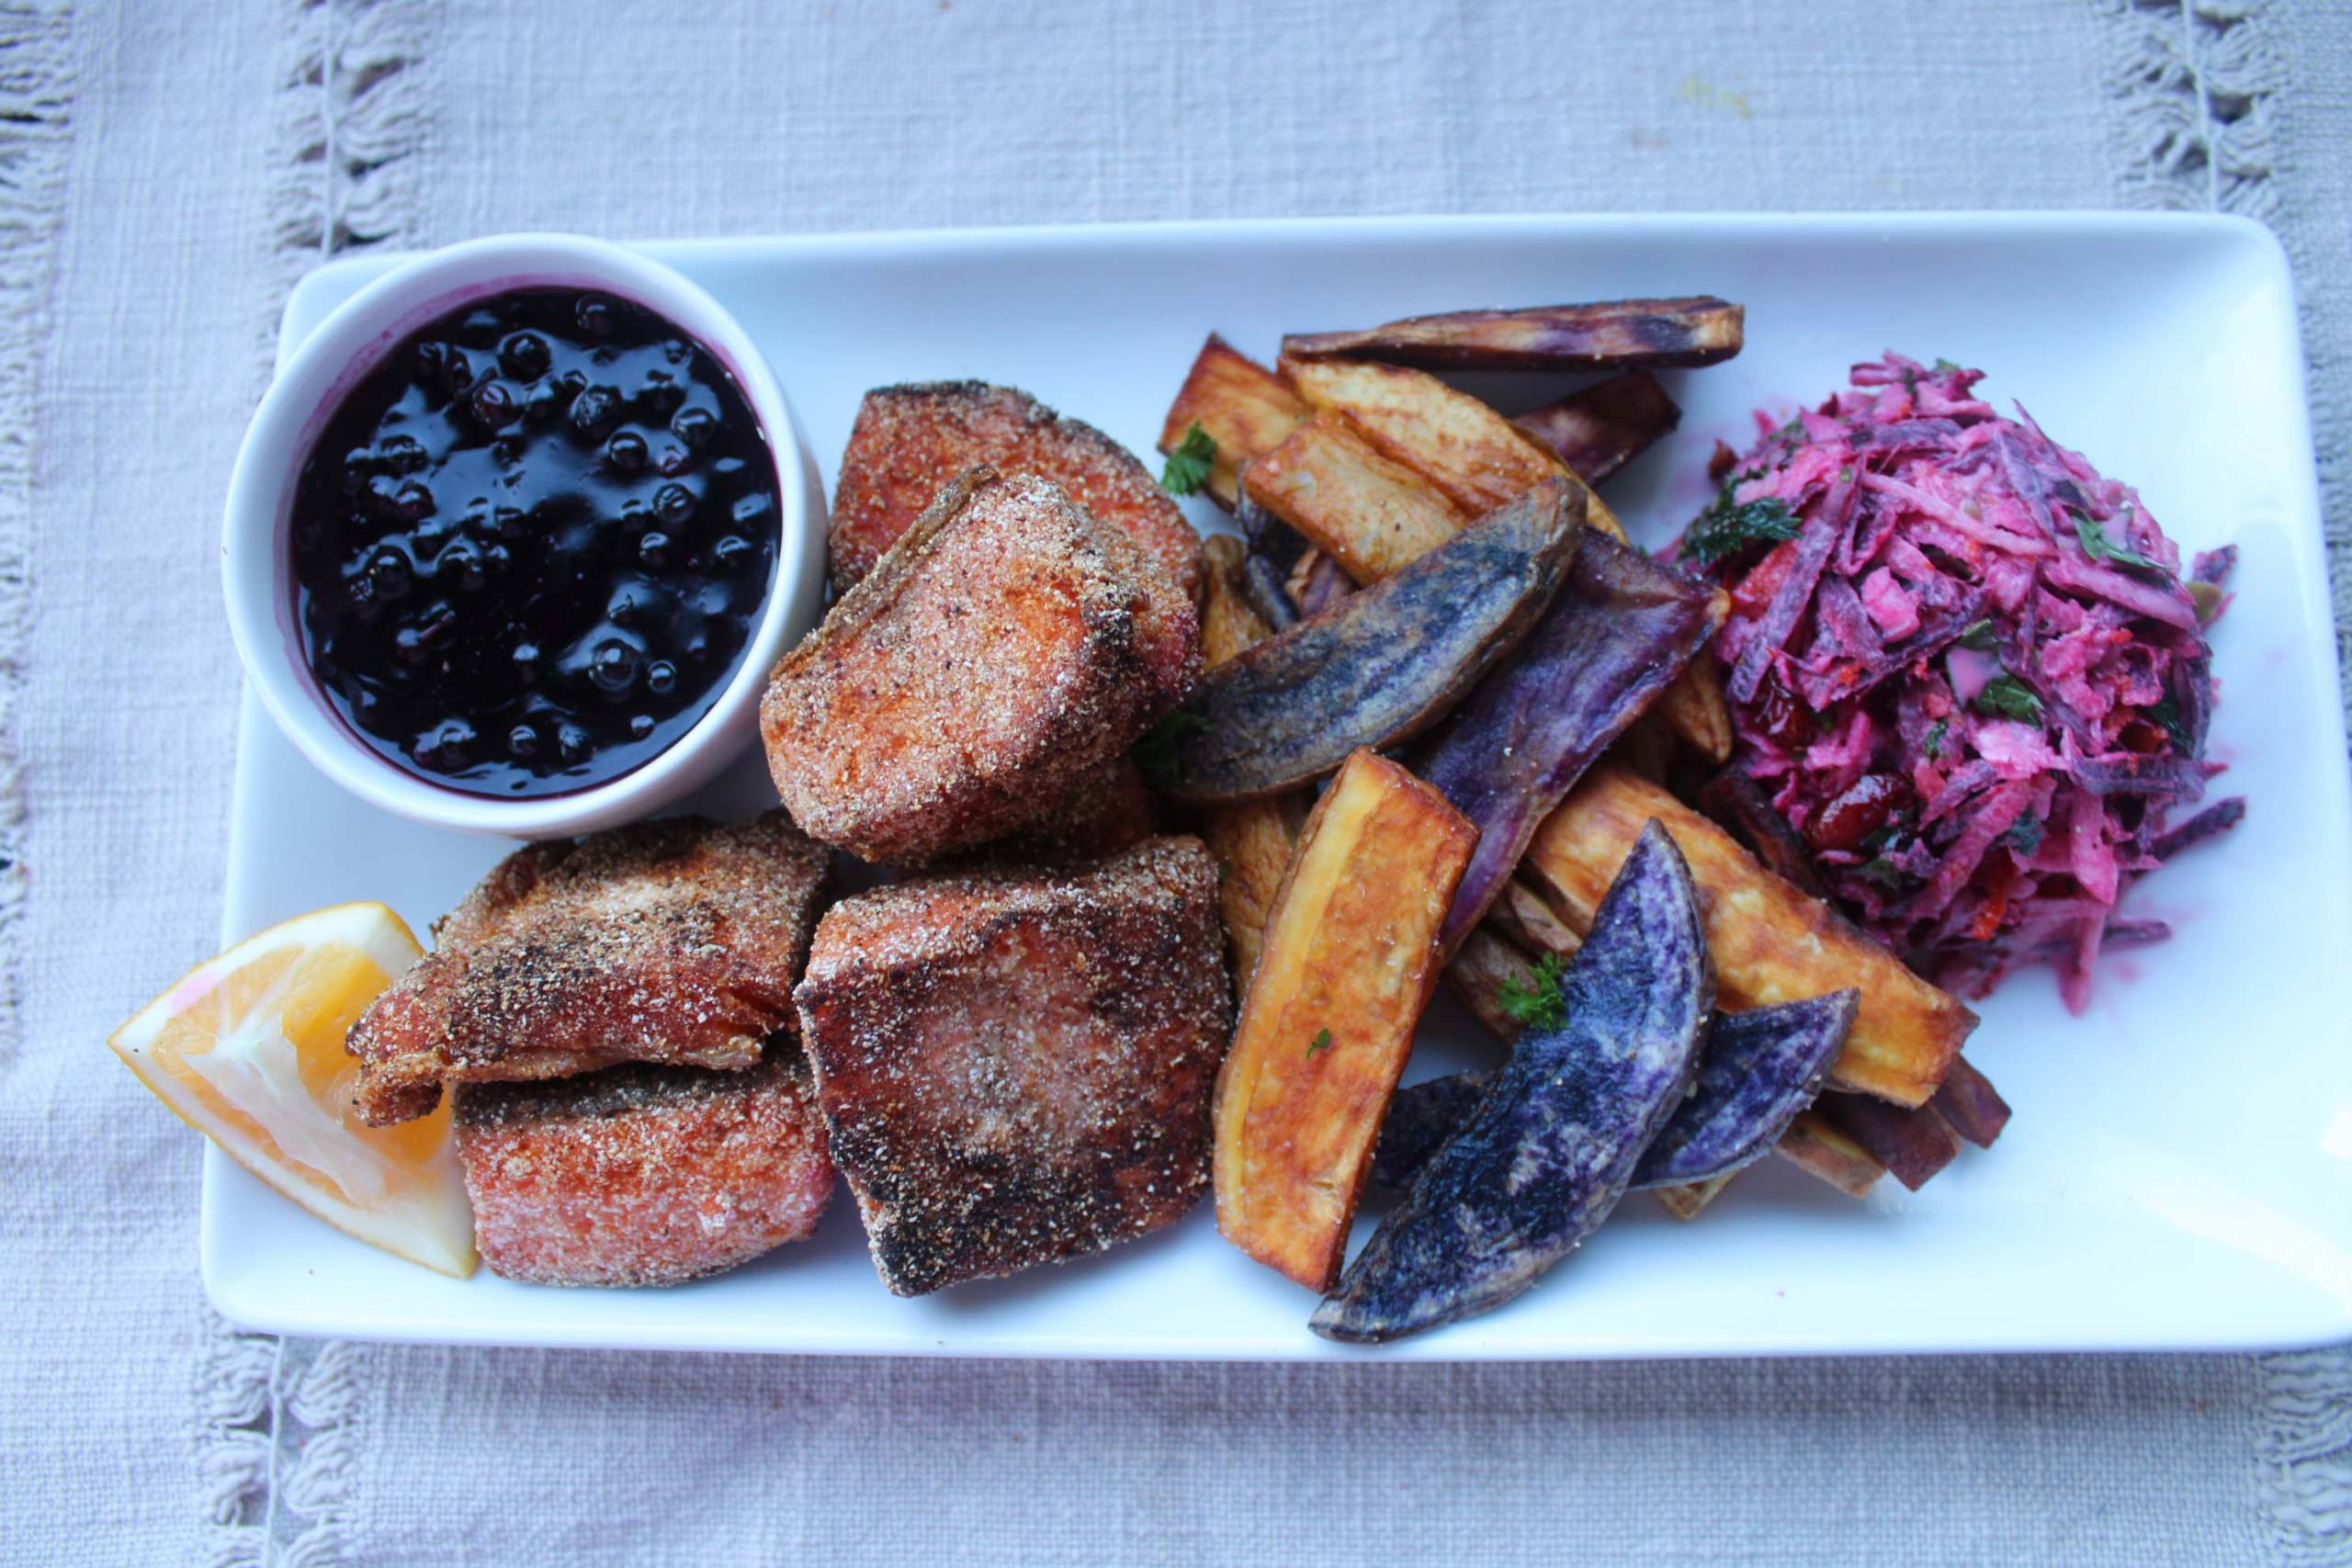 A plate of fried salmon and sweet potato fries, with berry sauce for dipping.